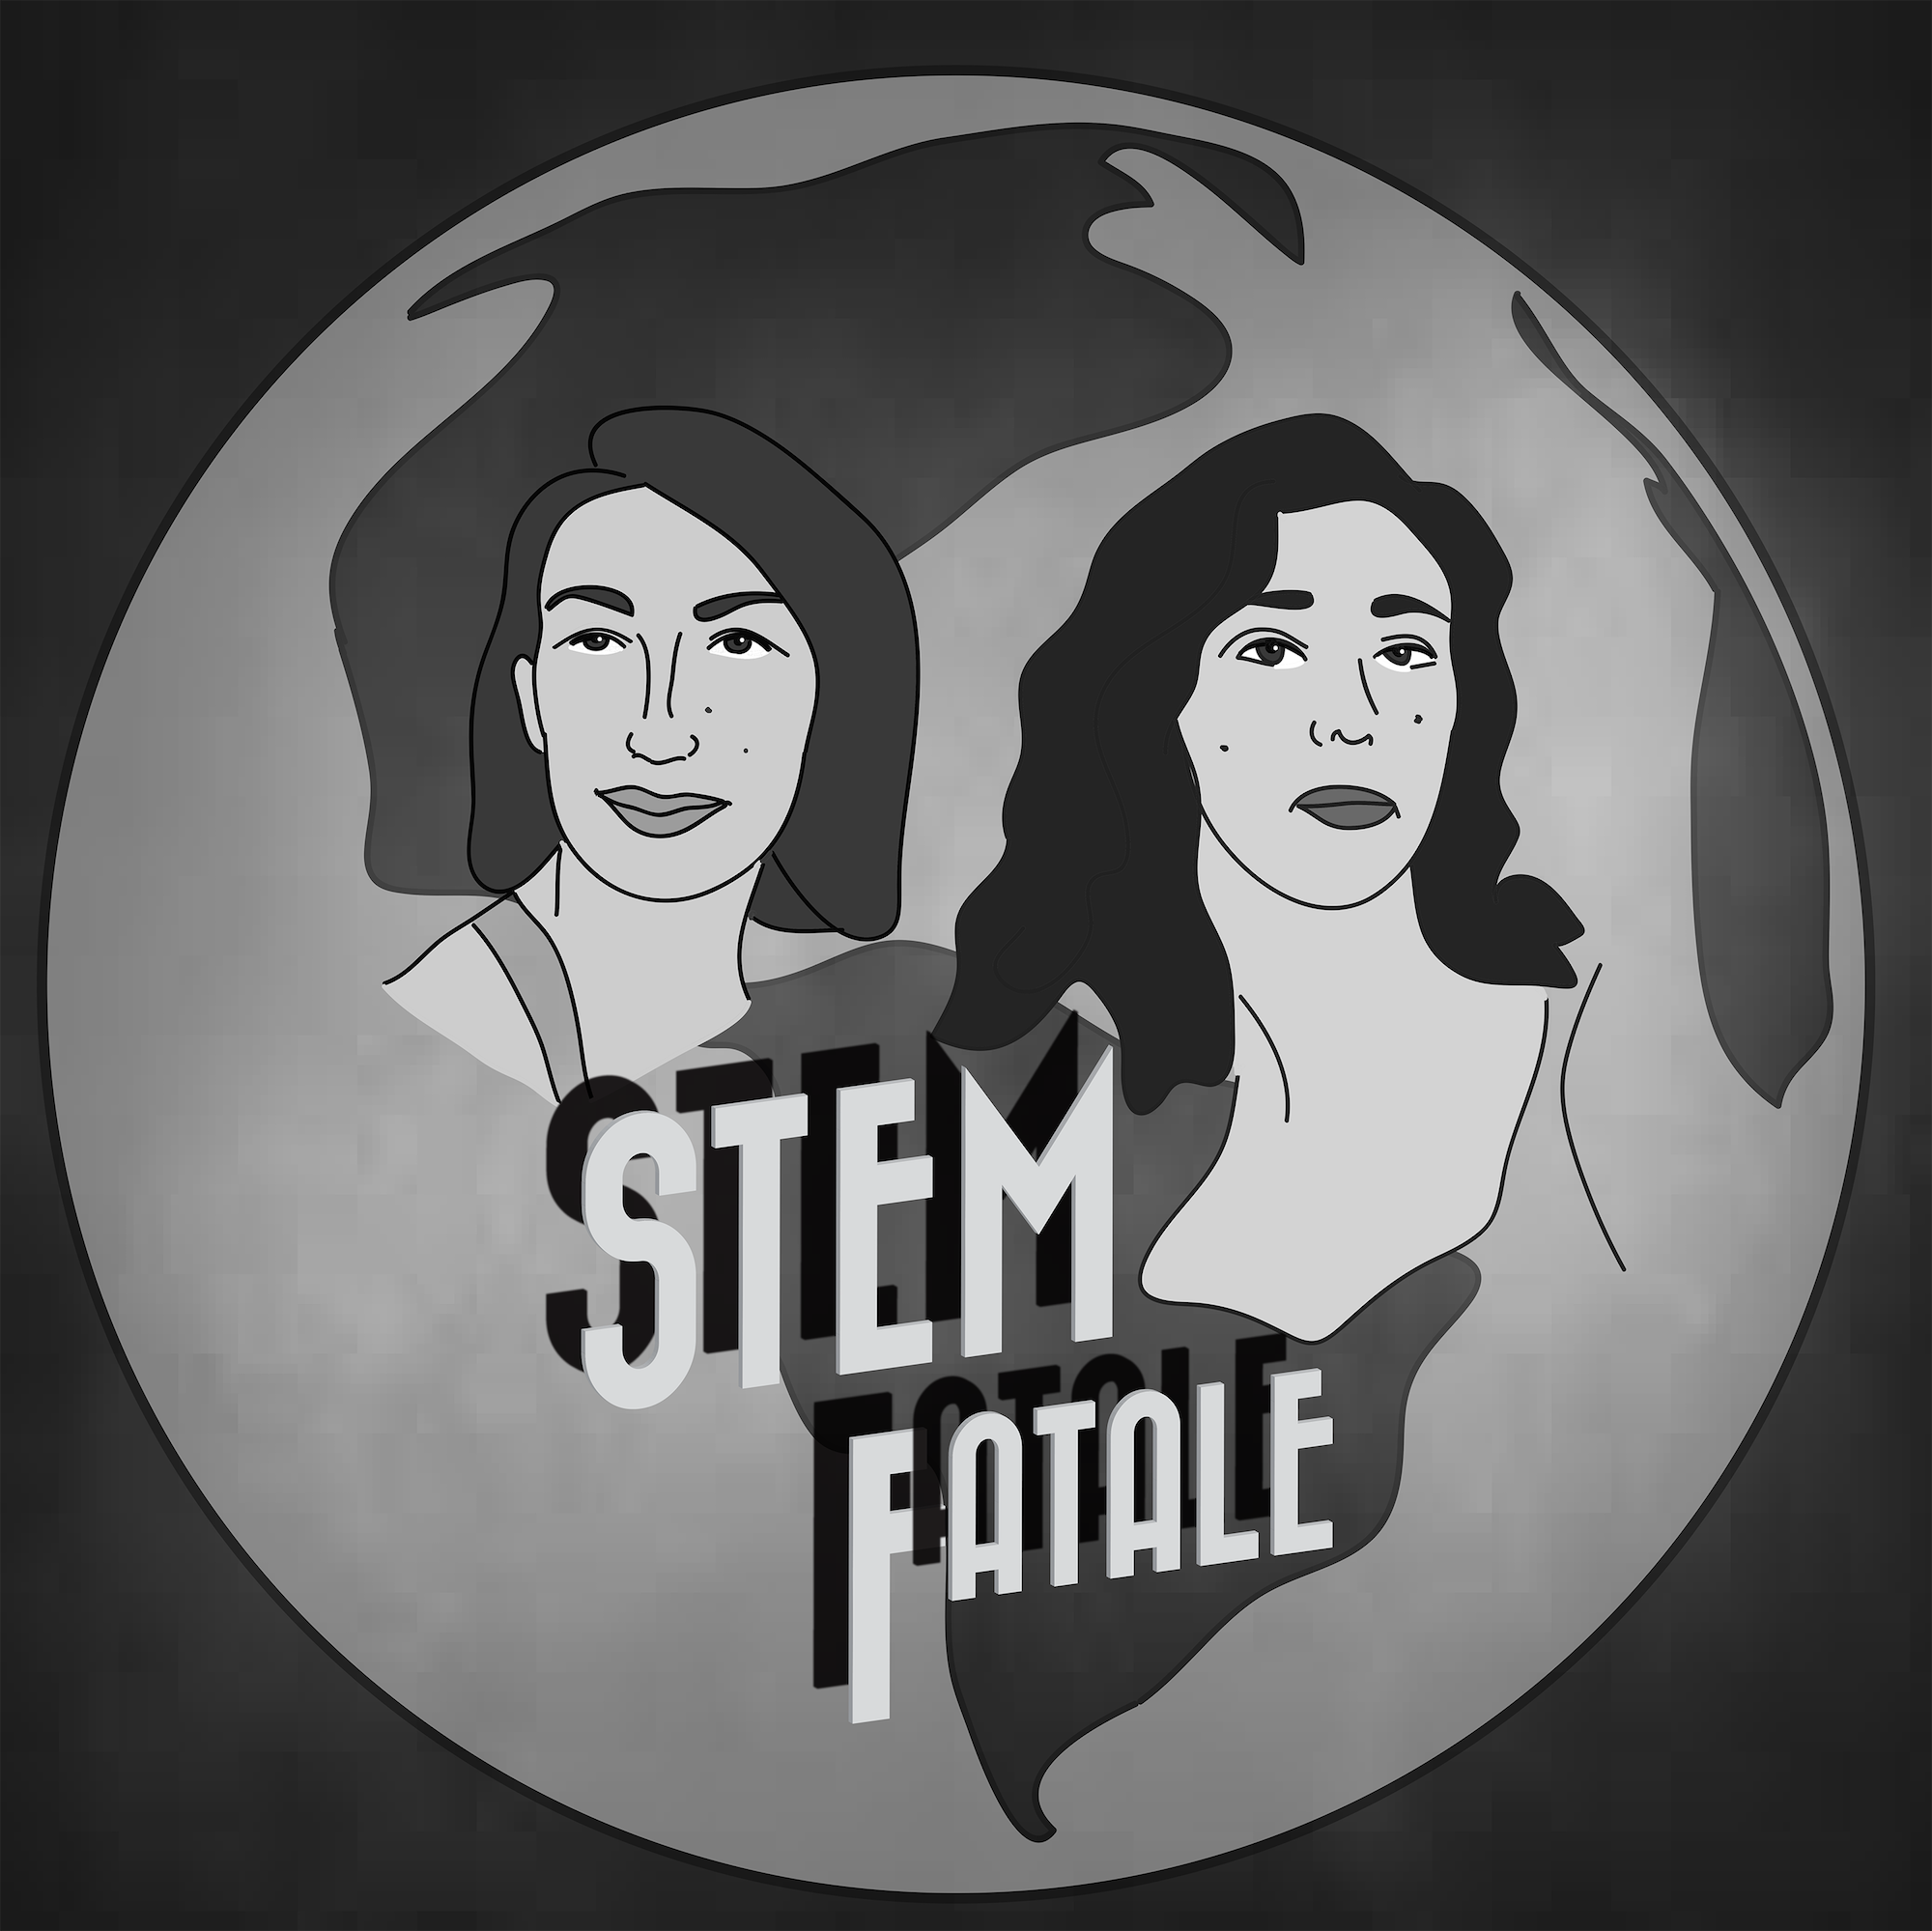 STEM Fatale Podcast